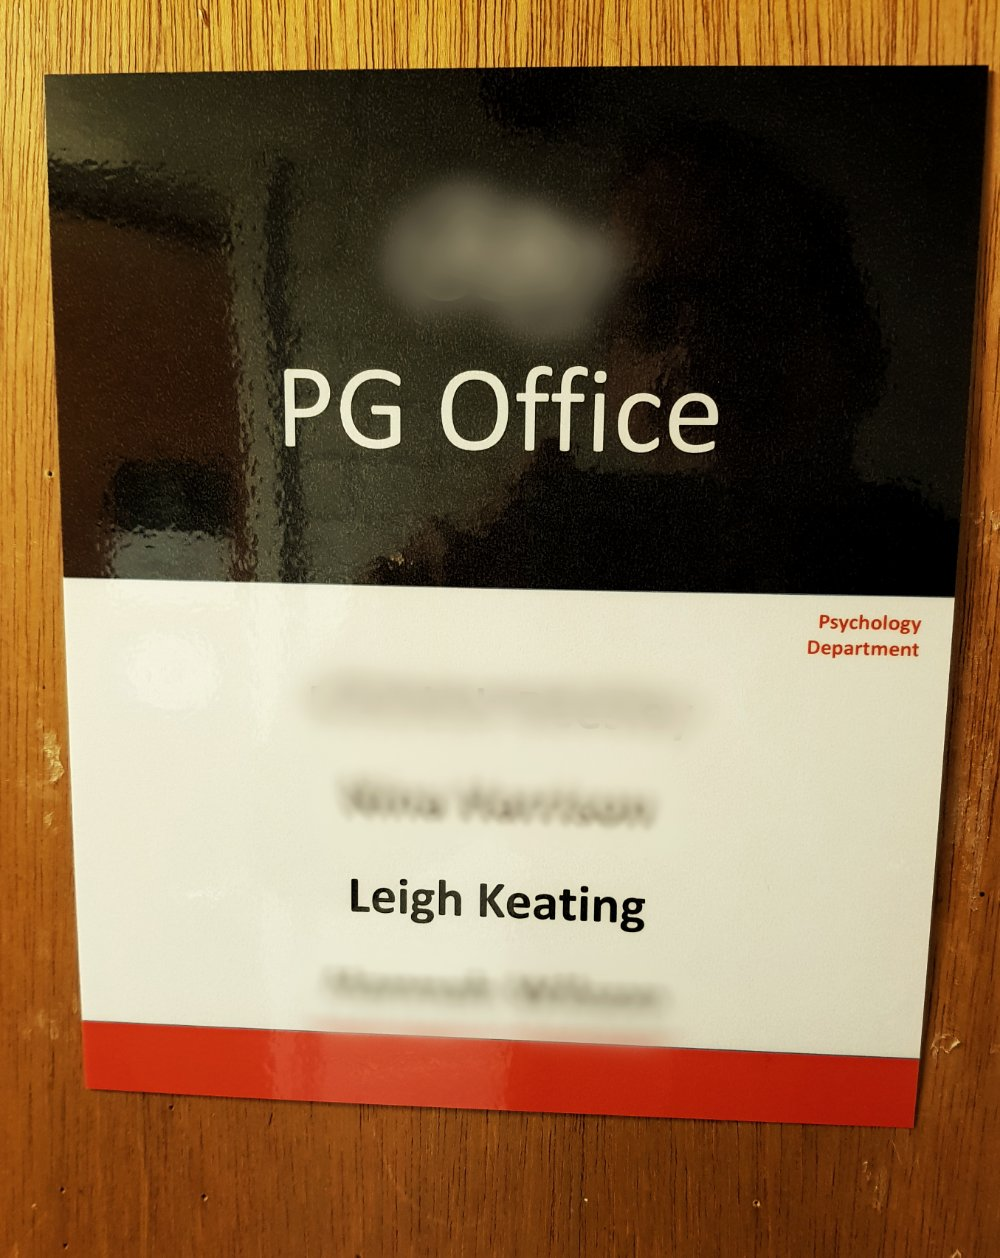 LEIGH'S OFFICE DOOR